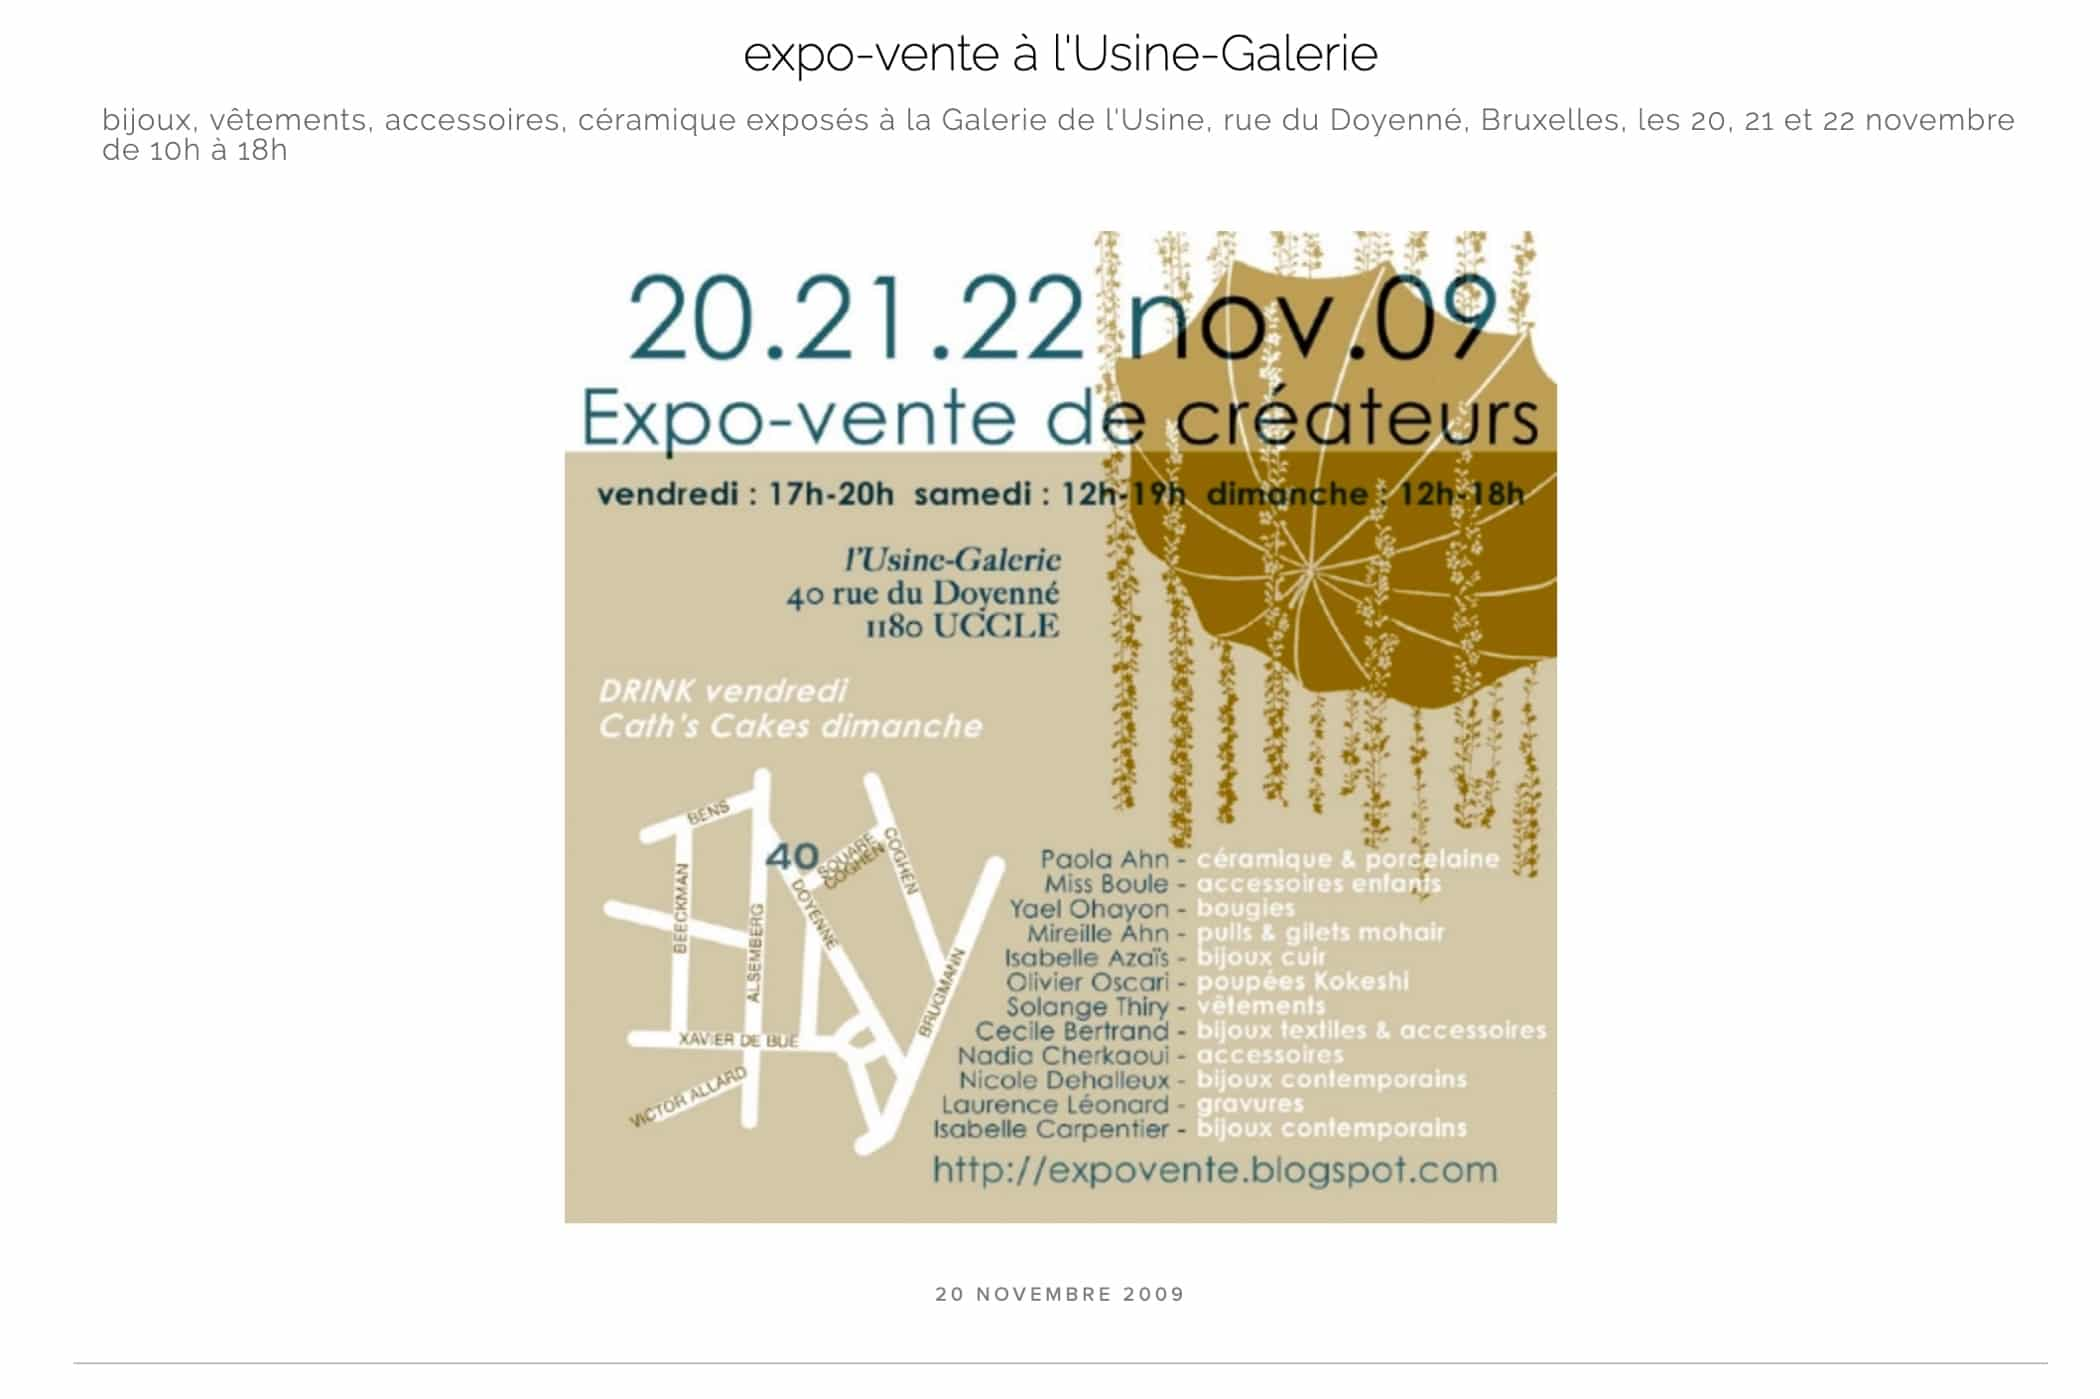 expositions 50